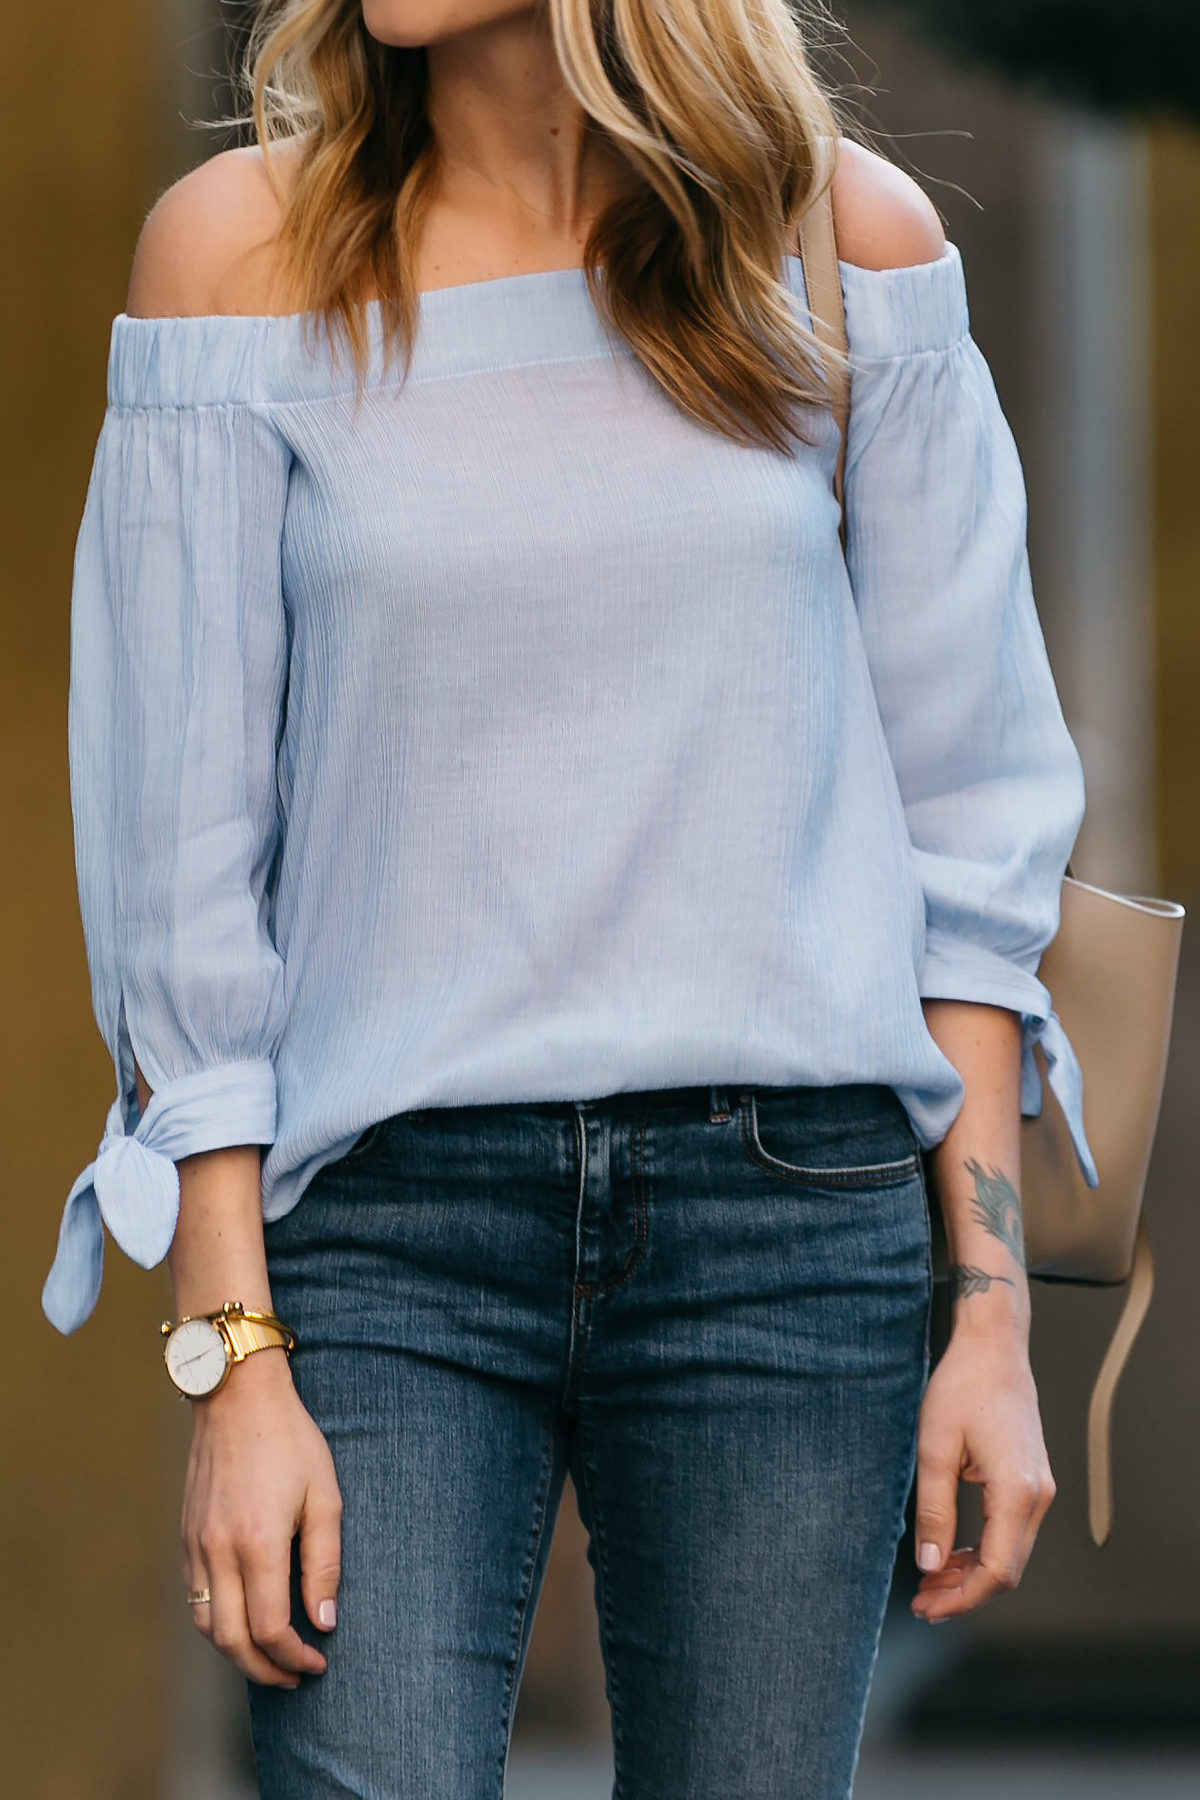 Fashion Jackson, Dallas Blogger, Fashion Blogger, Street Style, Ann Taylor Blue Tie Off-the-shoulder Top, Denim Skinny Jeans